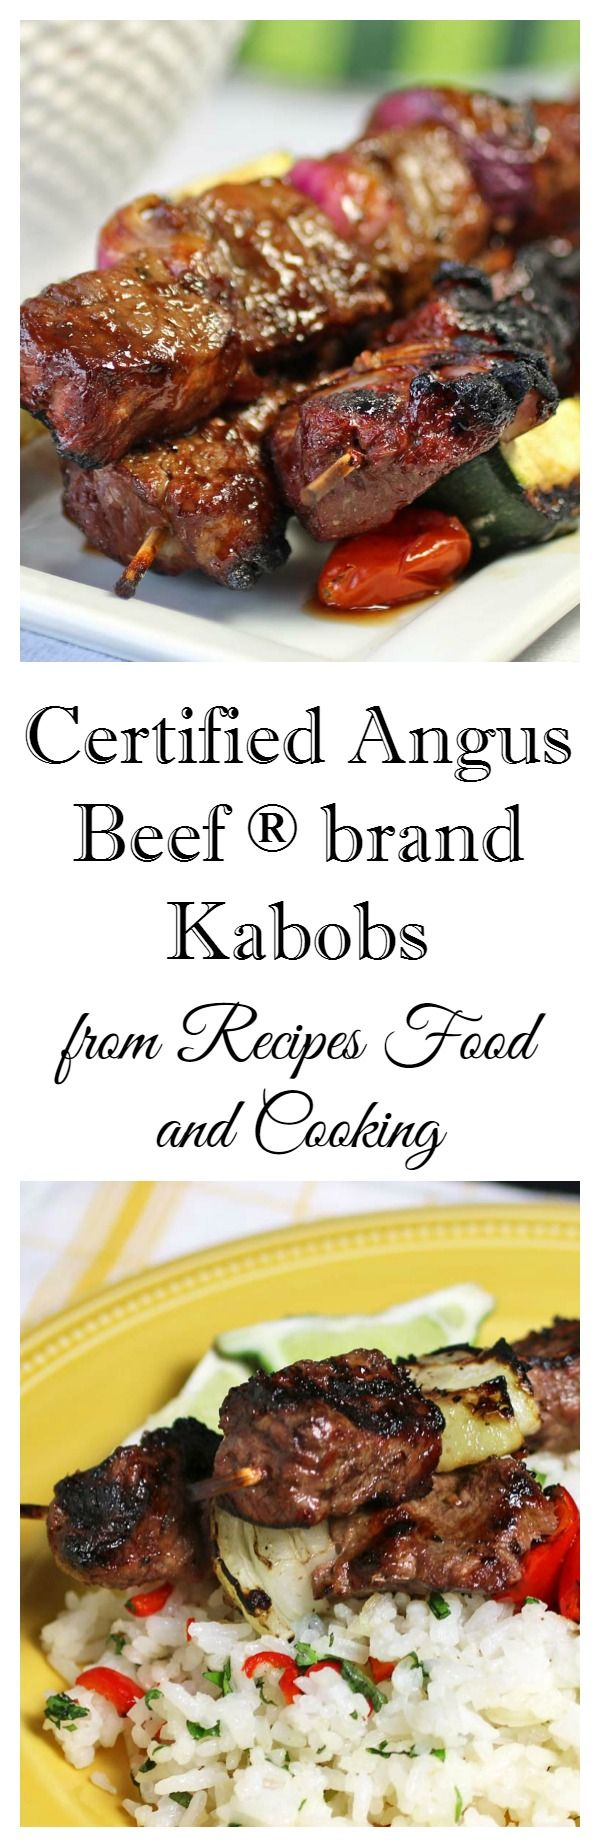 how to cook angus beef on grill